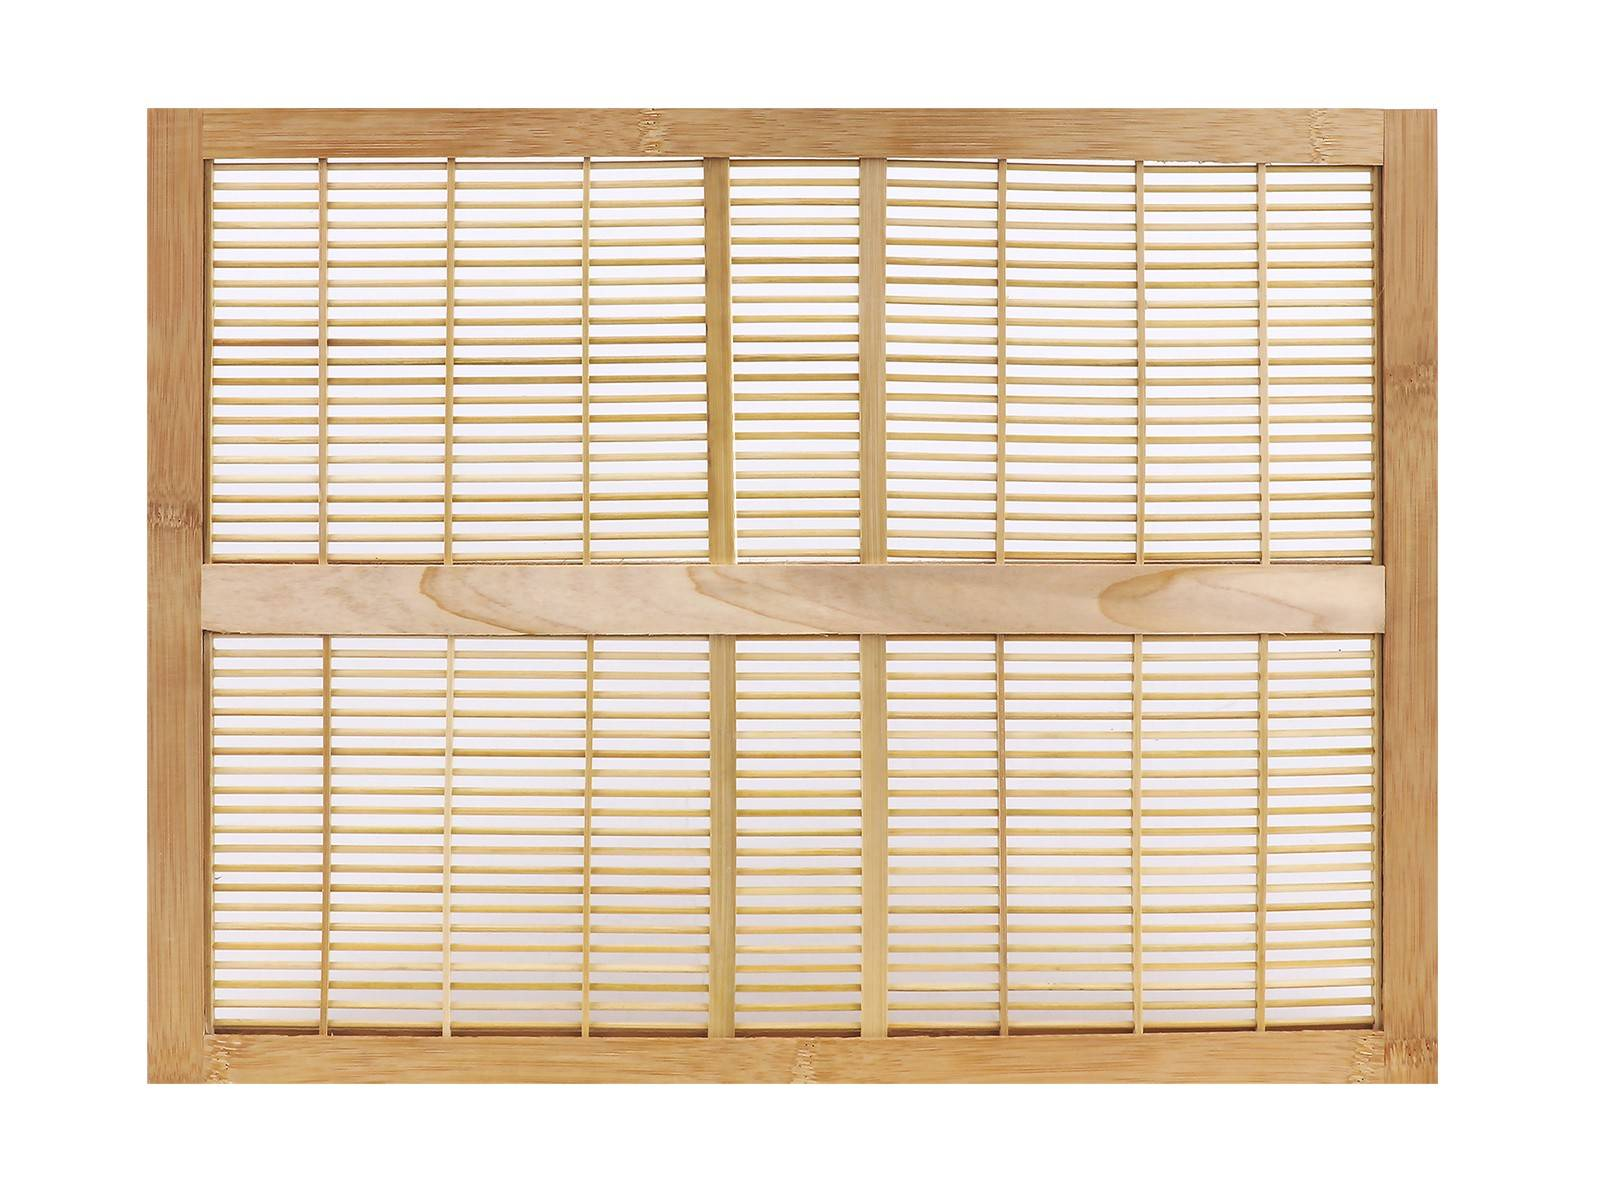 Bamboo Queen Excluder For Beehives 100 Natural Bamboo Cane